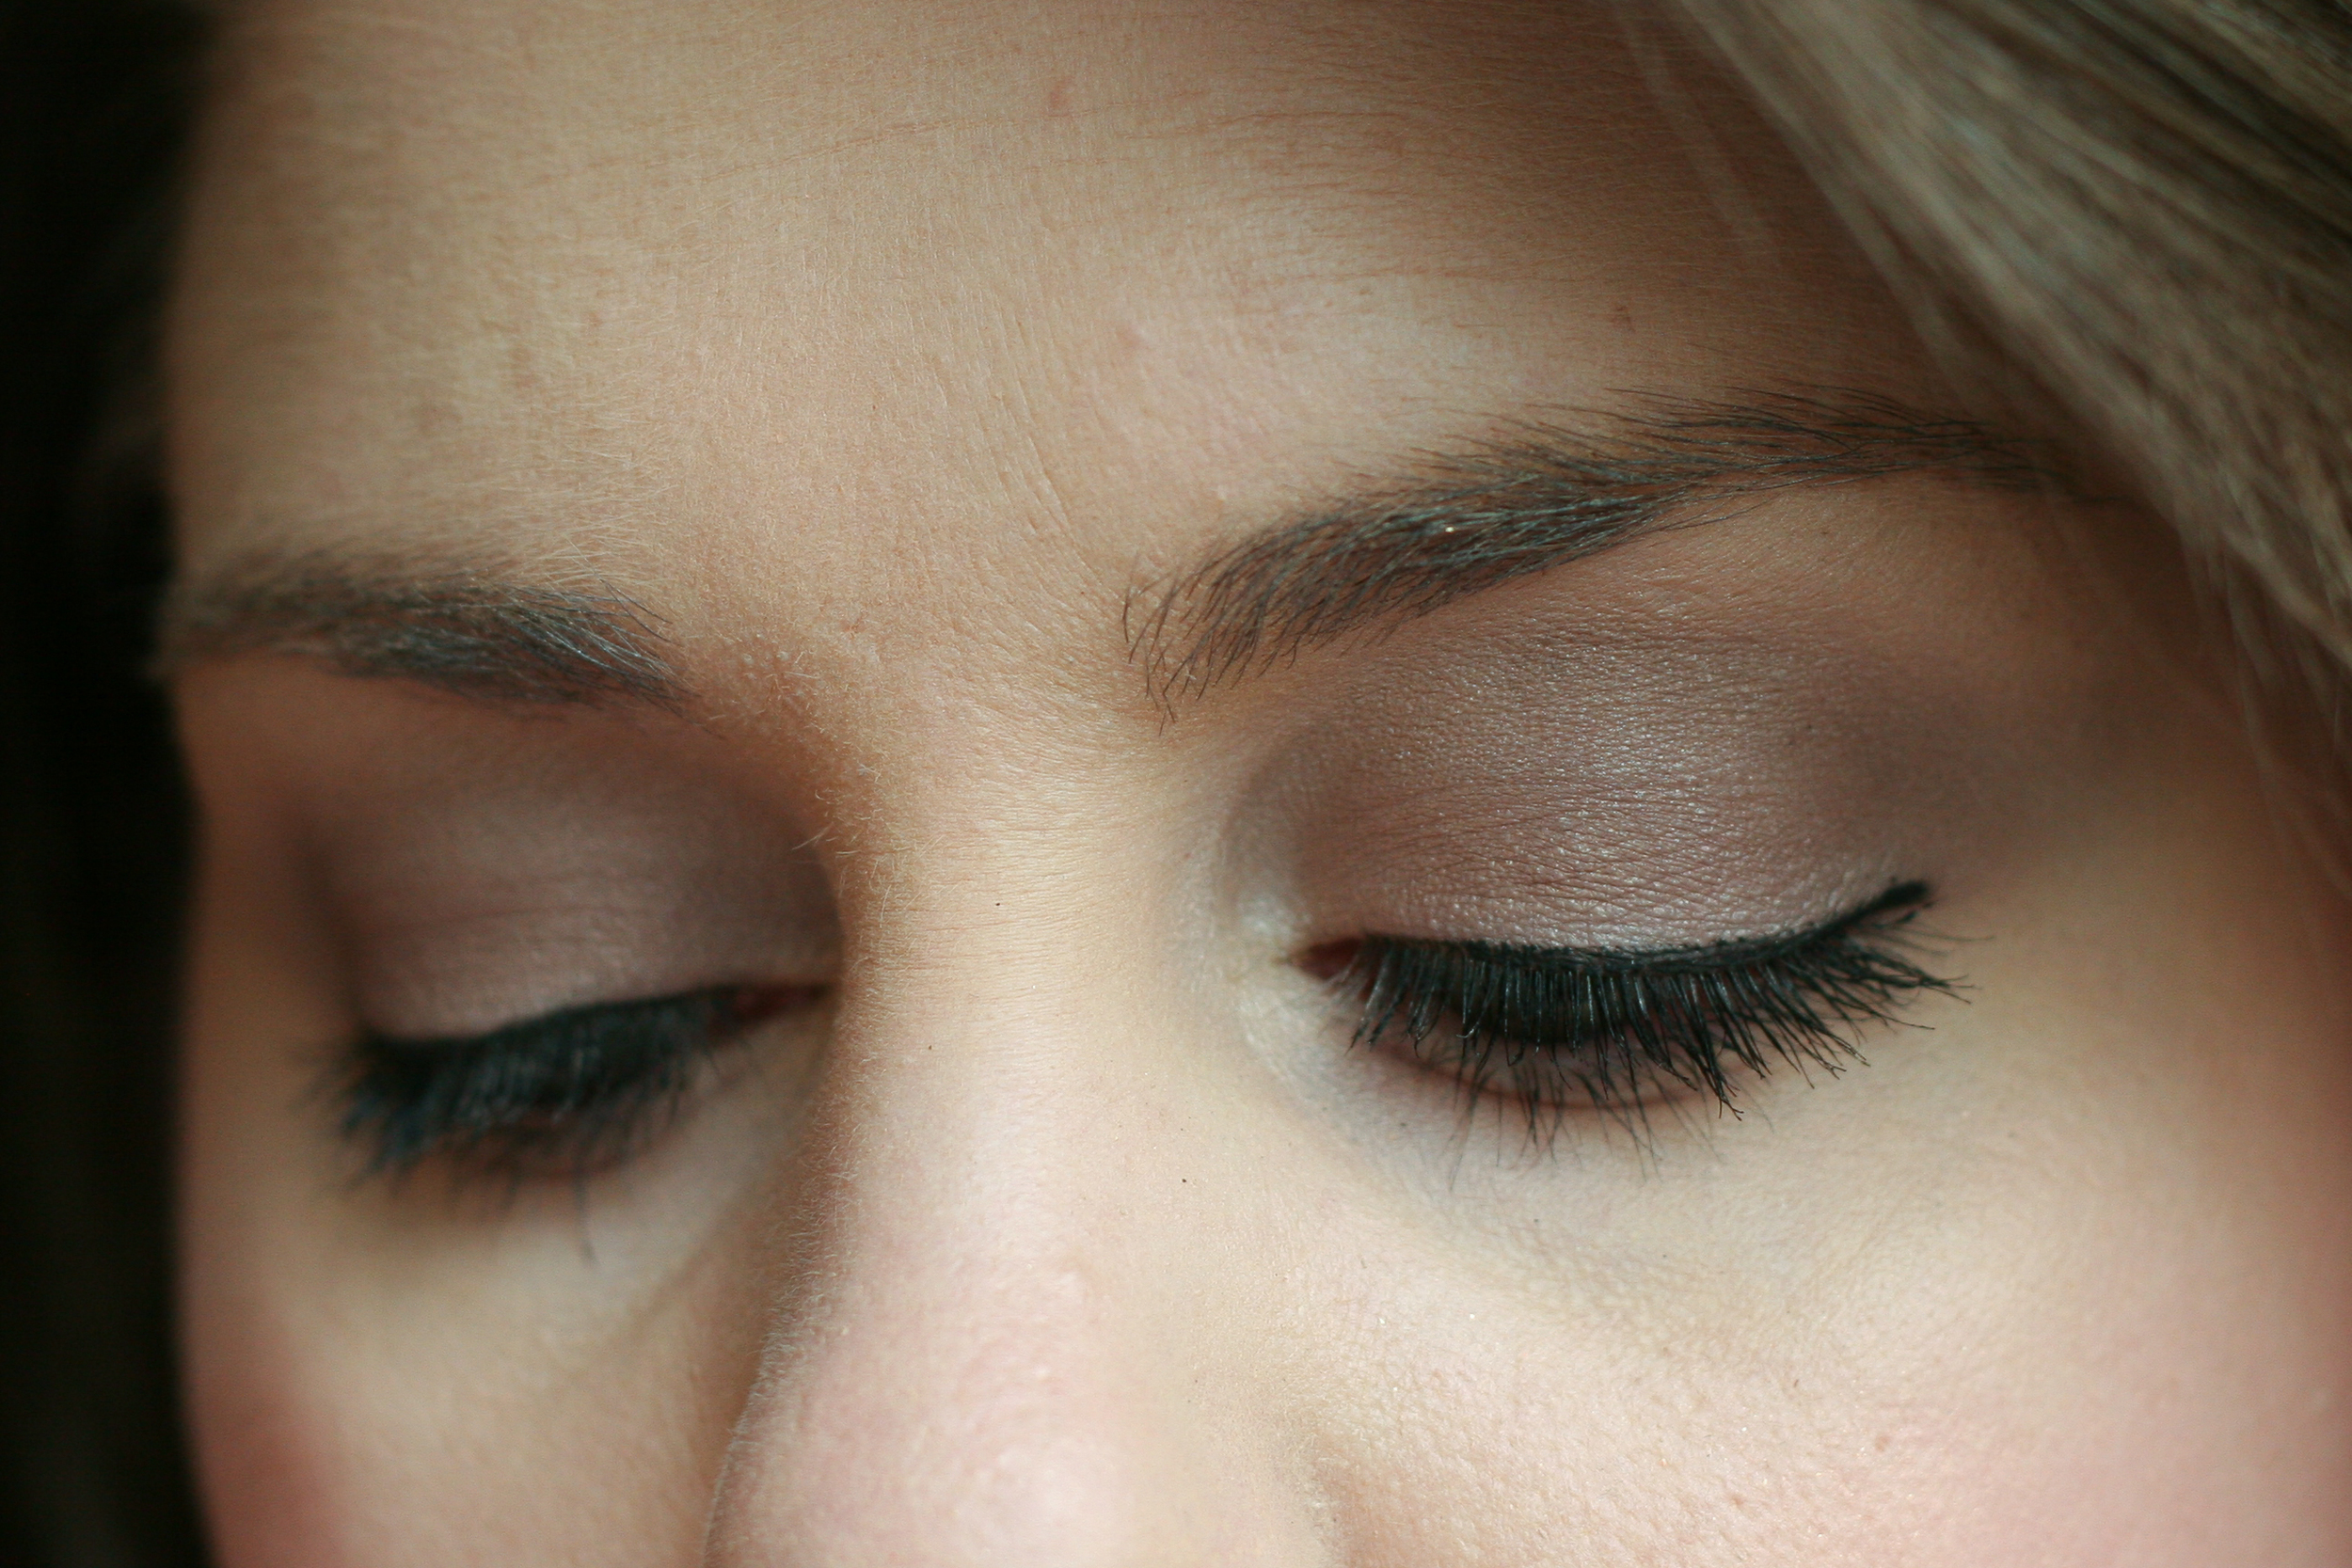 MAC Fluidline in Blacktrack on my upper lash line. (On my lids:  NYX eyeshadow in Iced Mocha .)